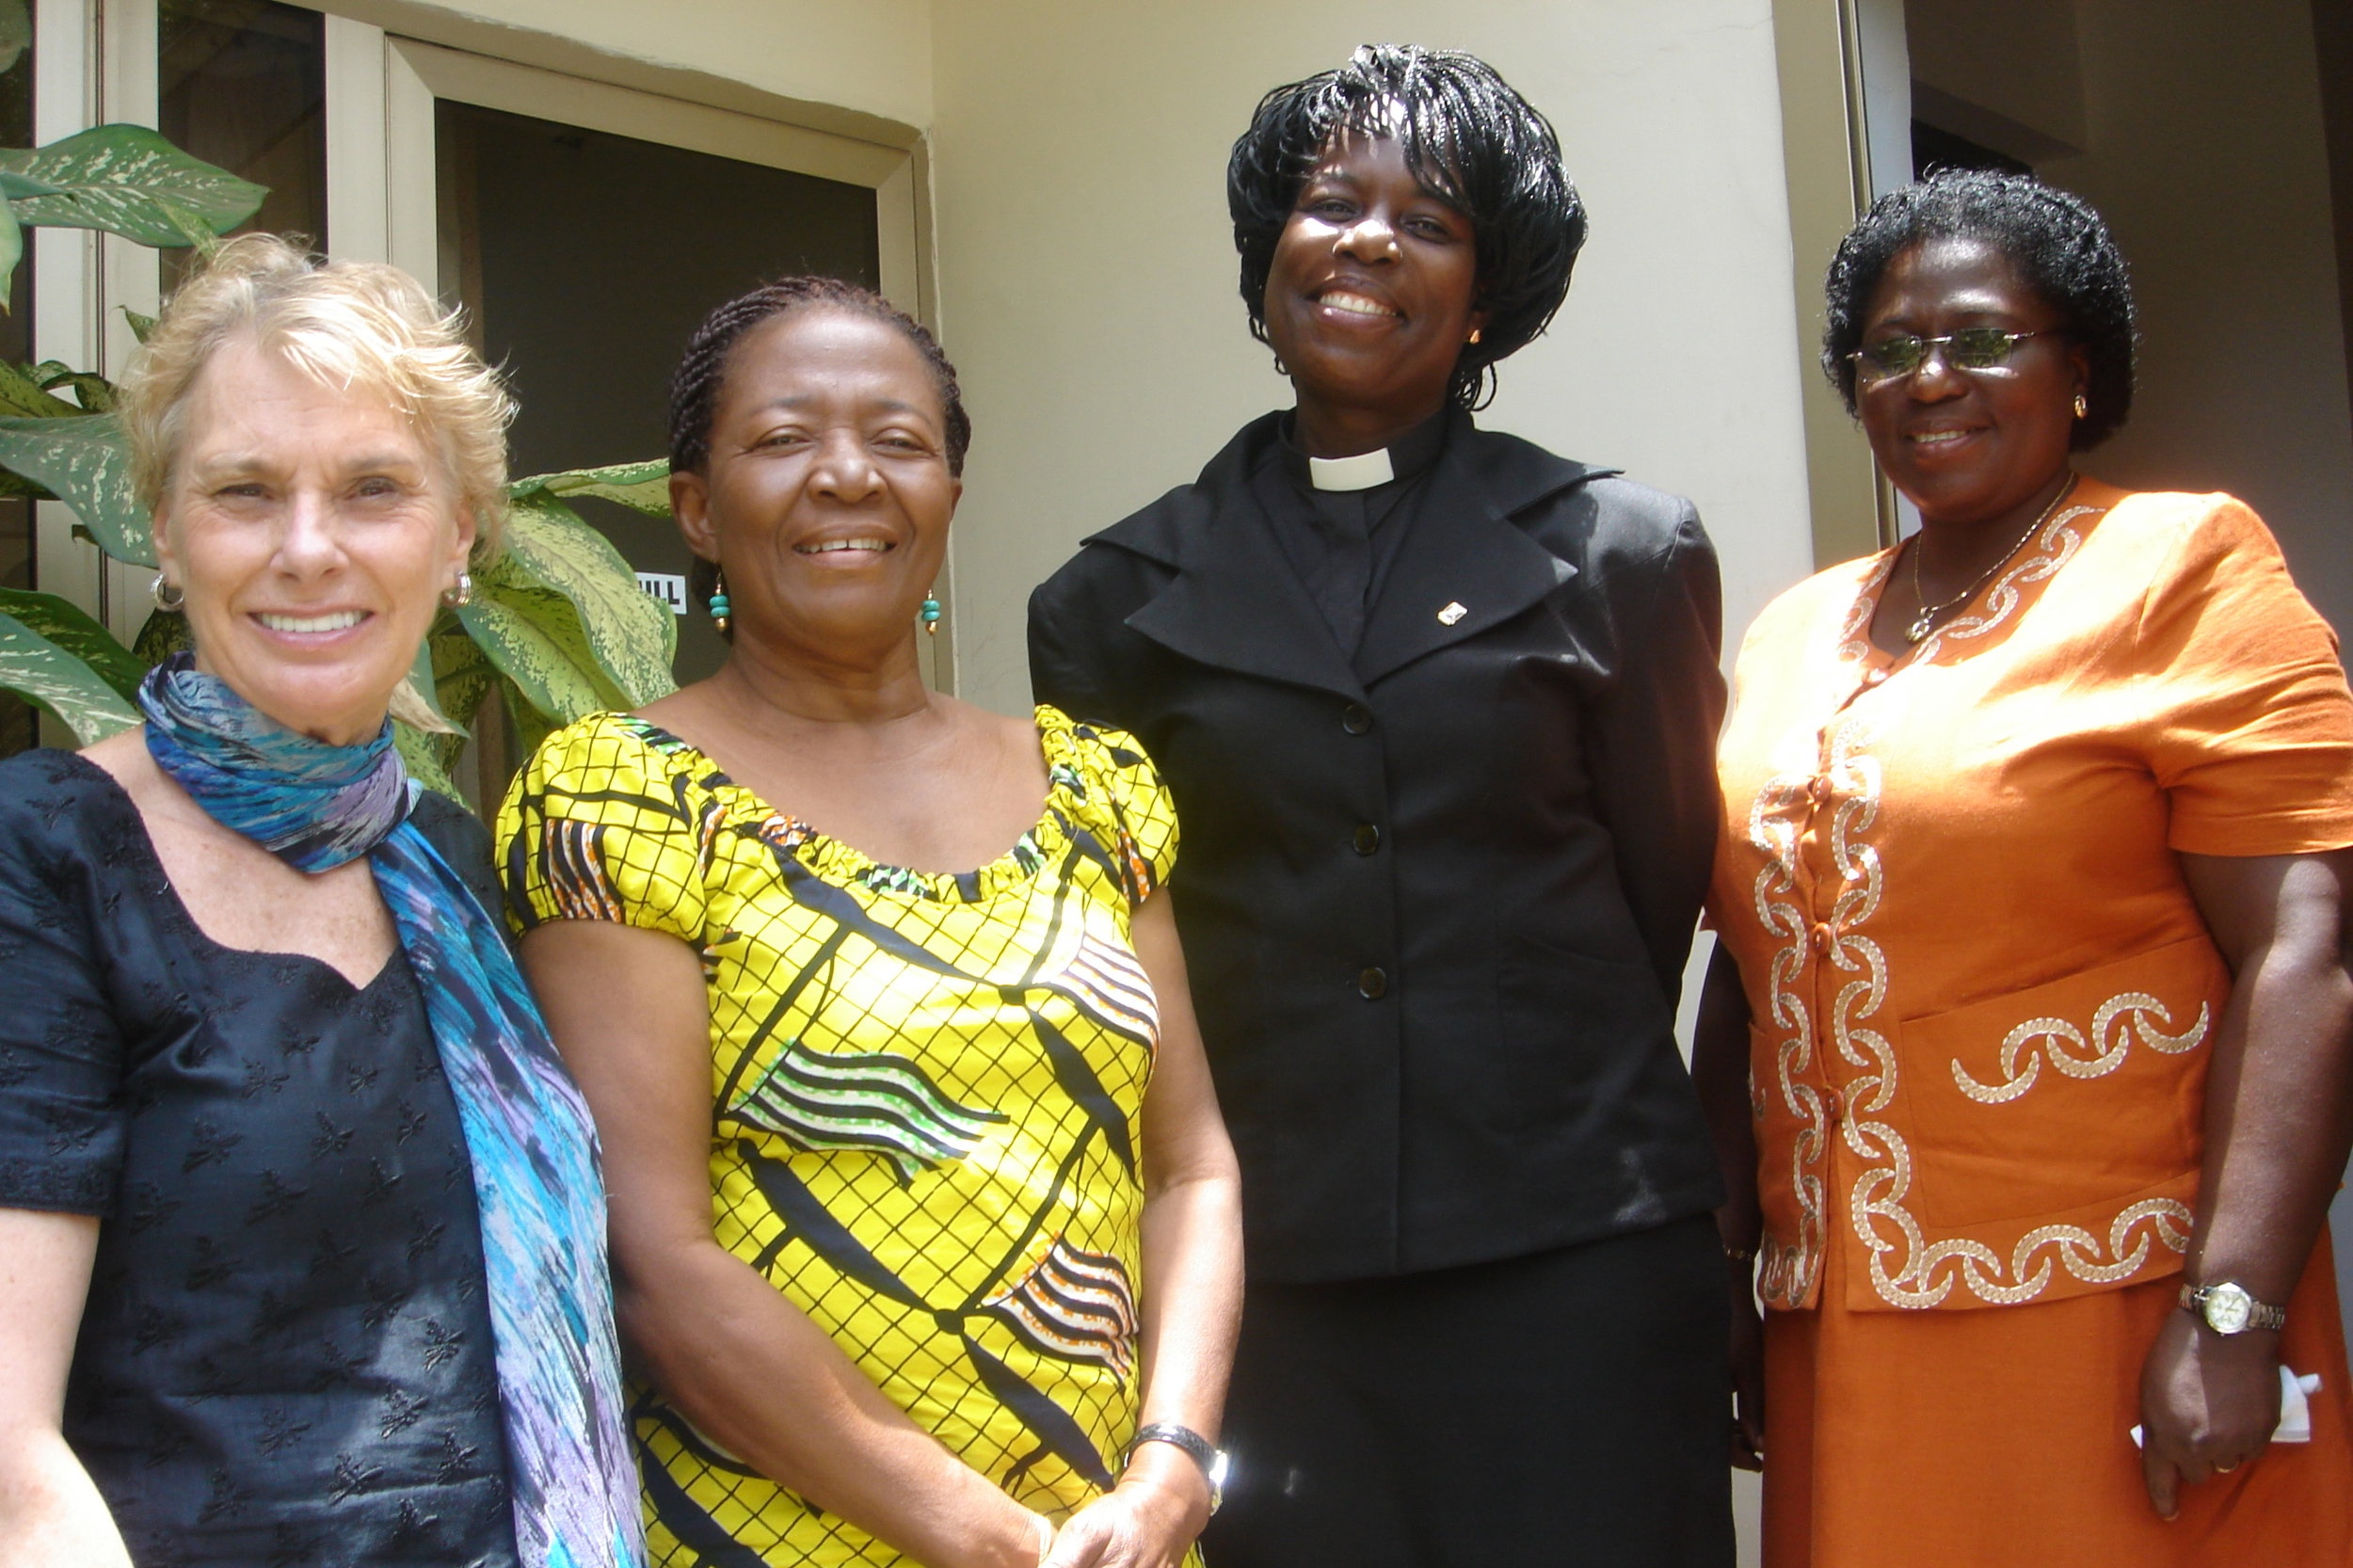 The first lady of Ghana, Ernestina Mills, invited Susan to bring economic opportunity ideas to a few of the nonprofits serving the capital city of Accra and surrounding villages.